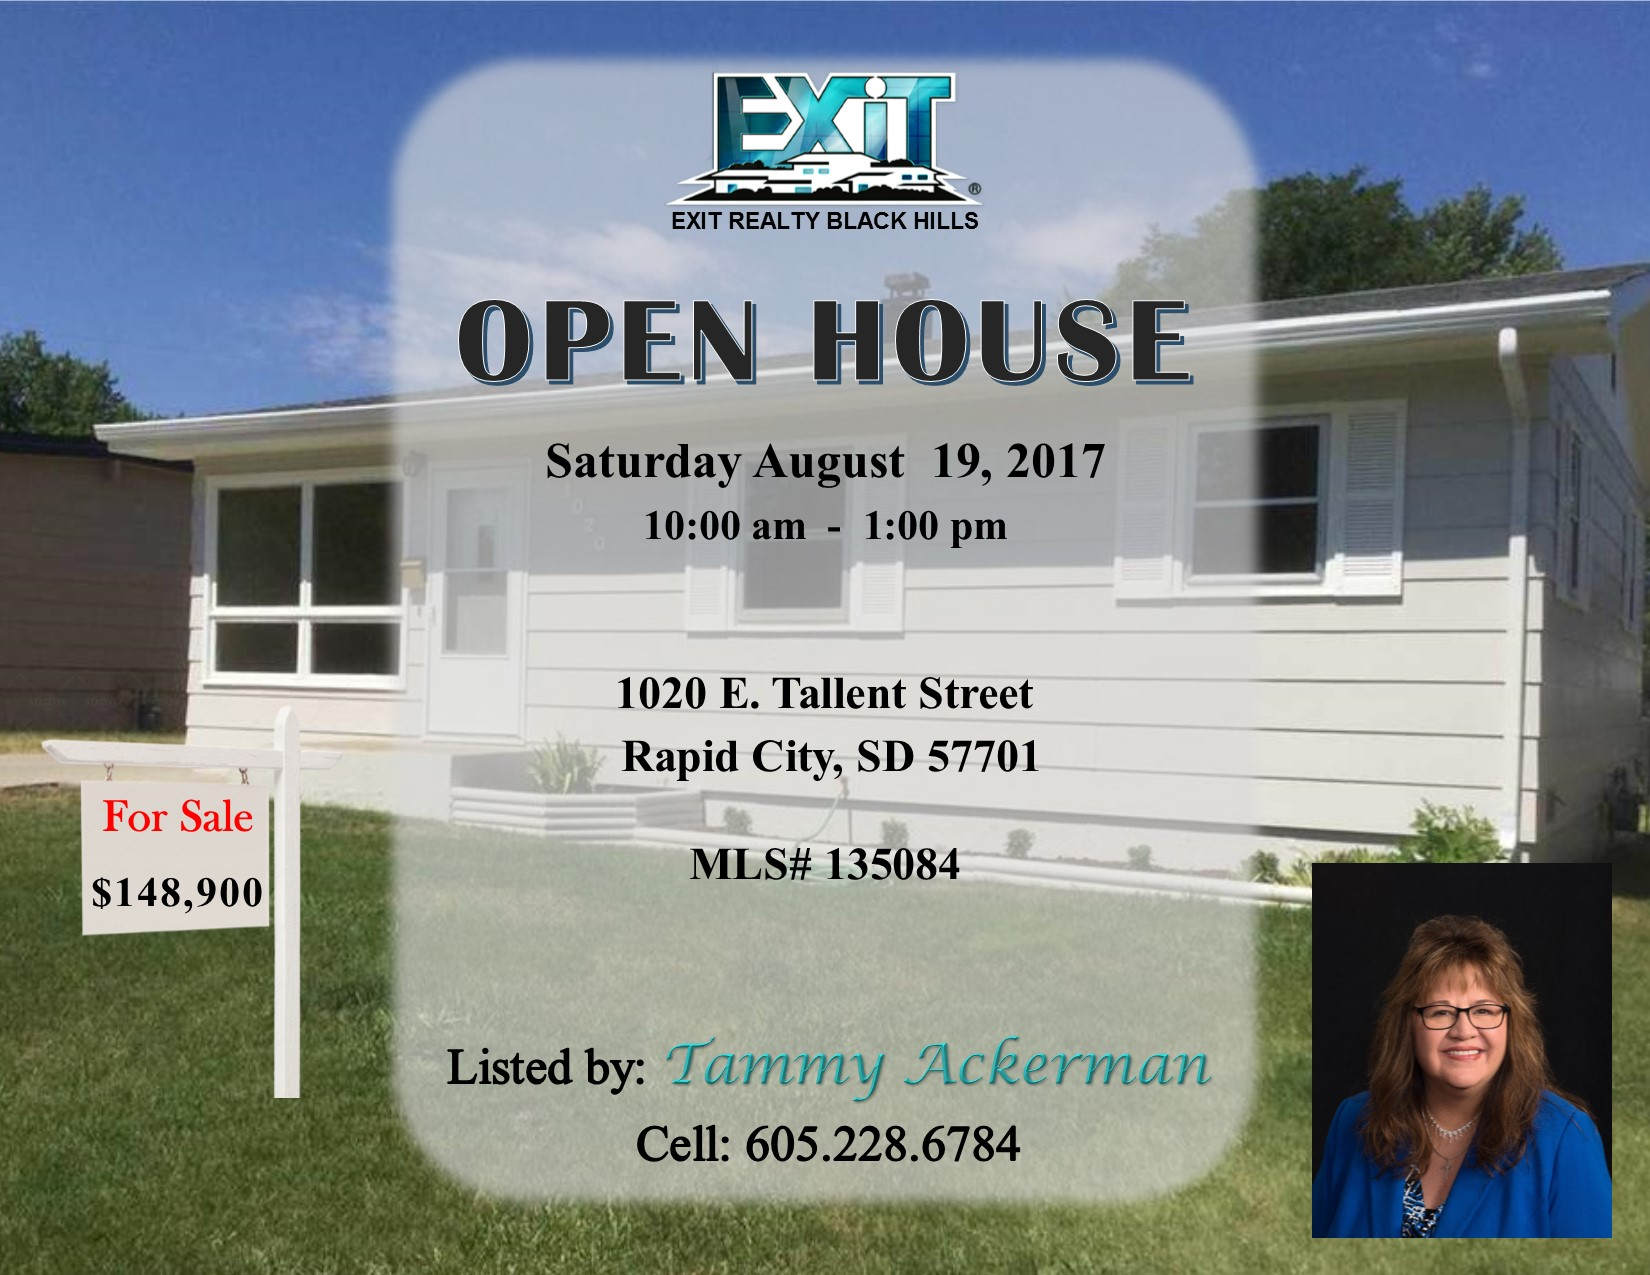 OPEN HOUSE Saturday August 19, 2017